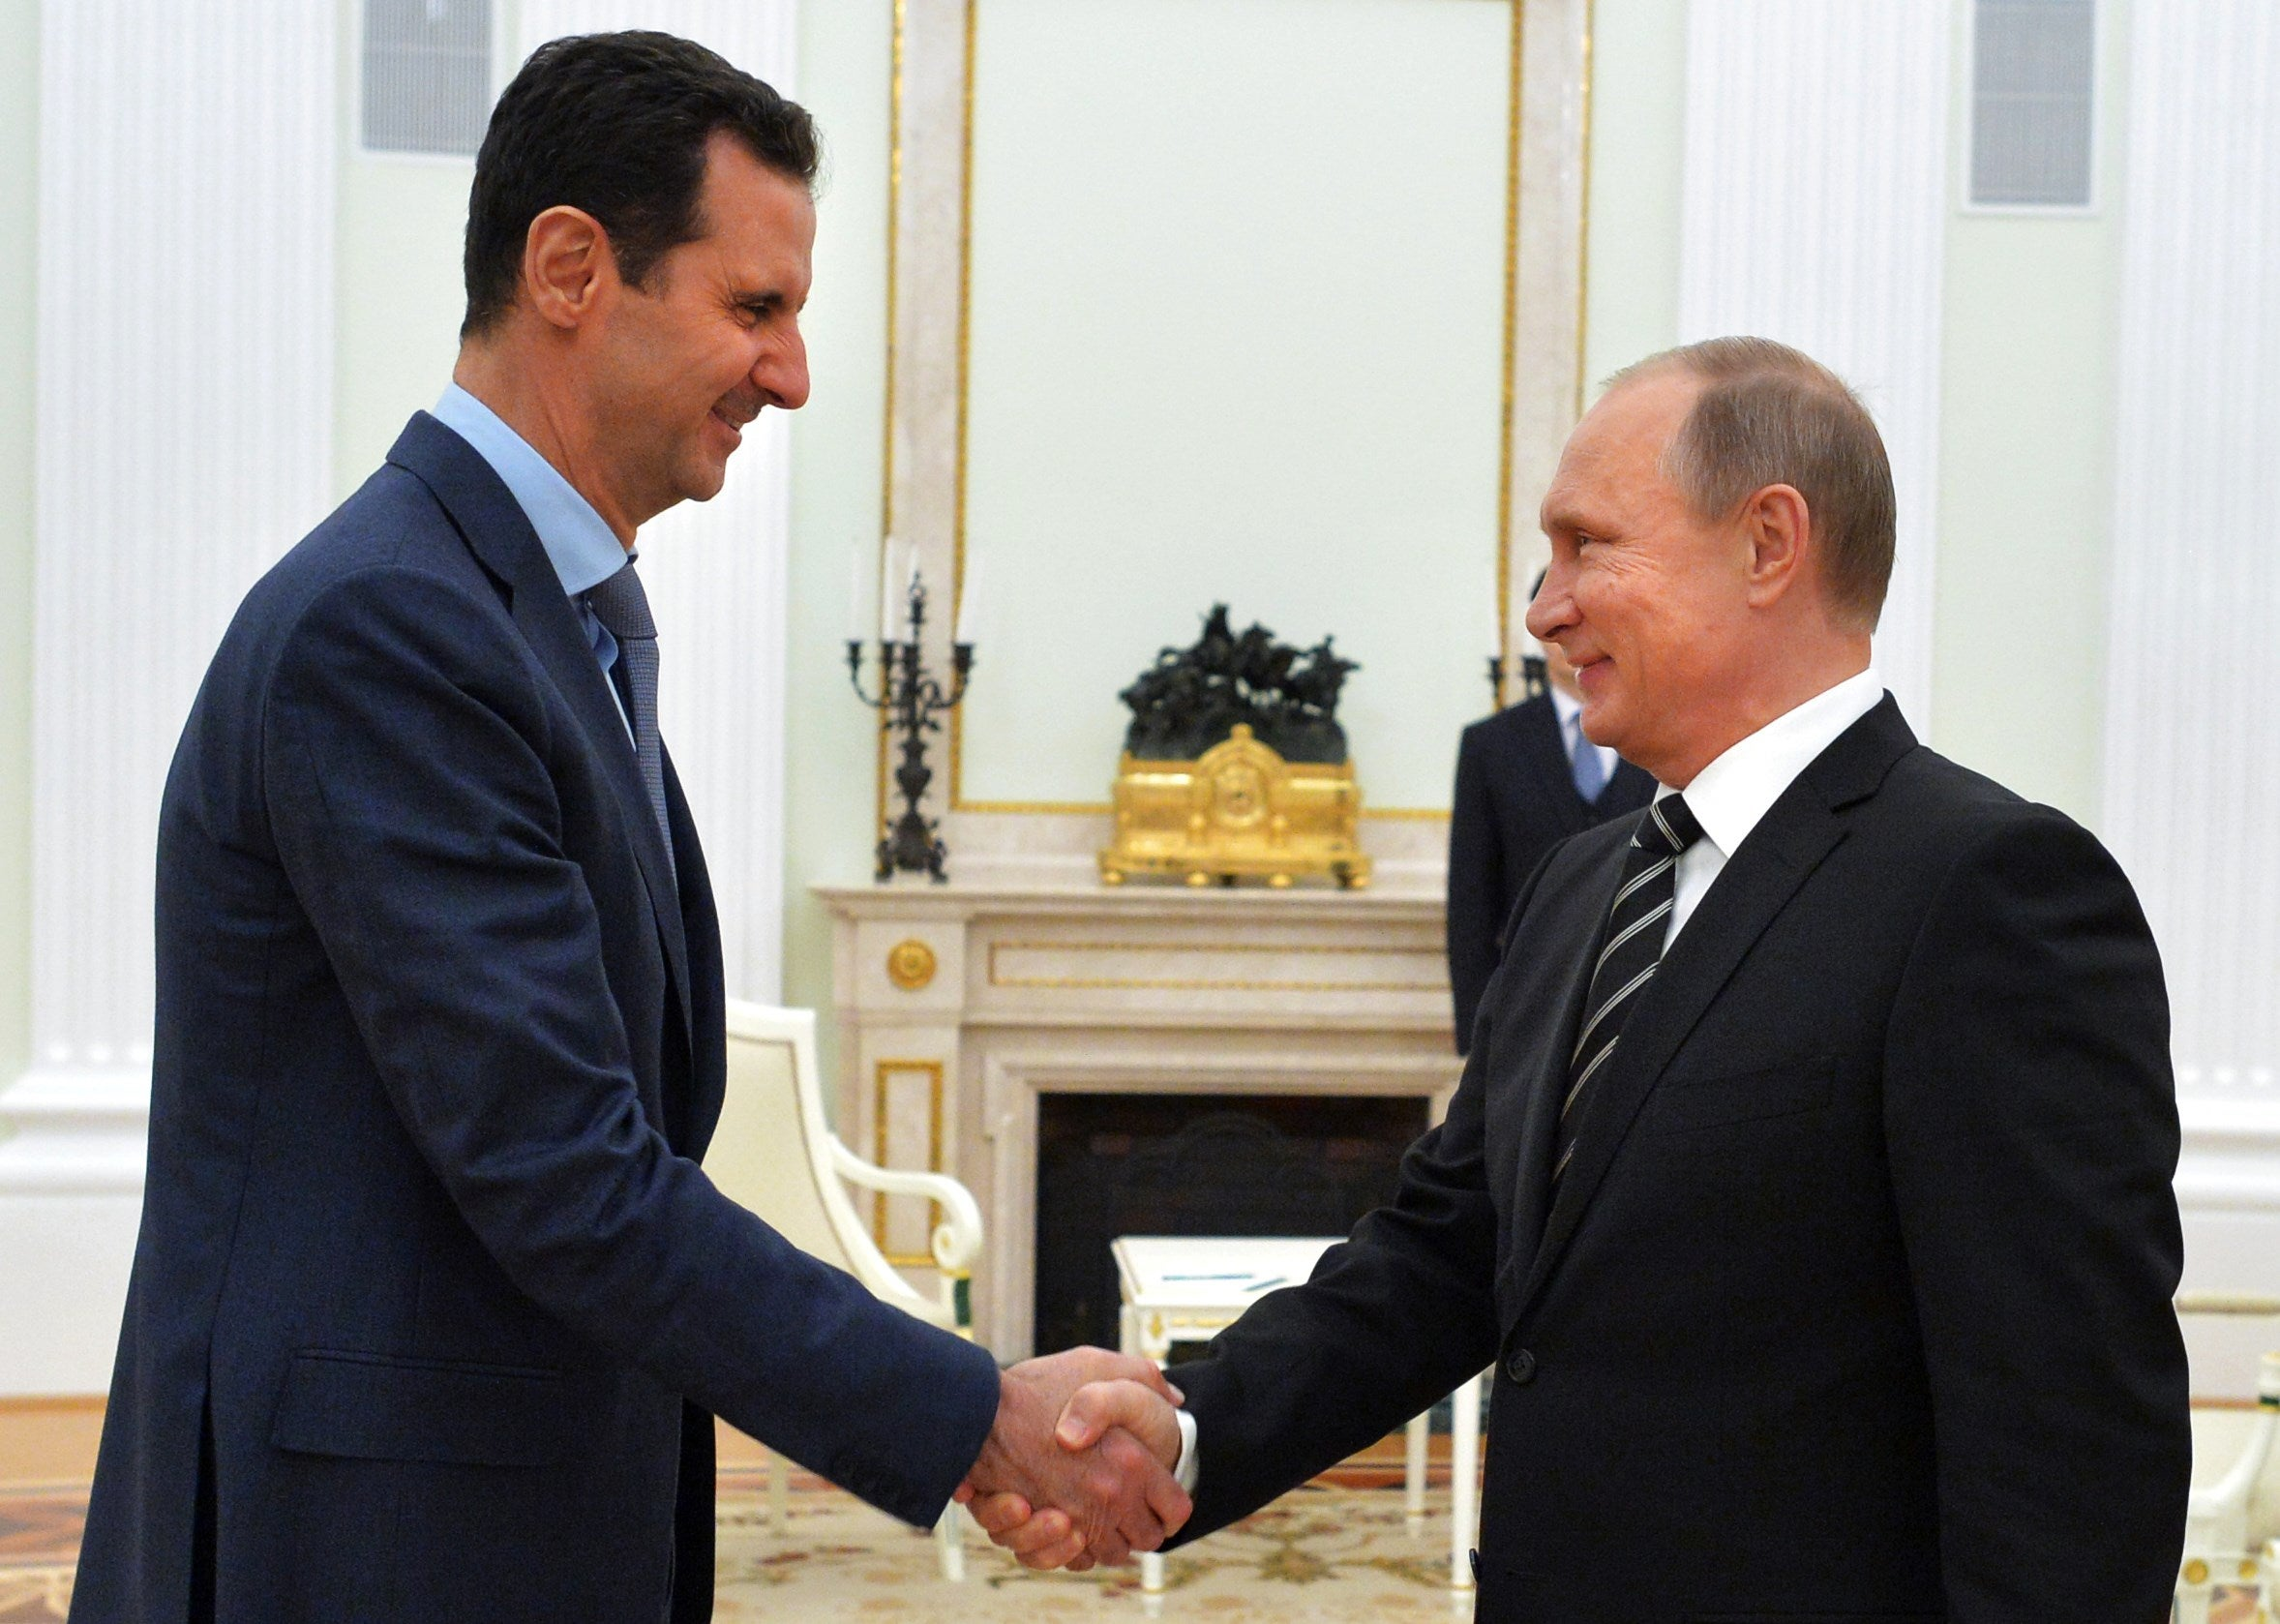 Russian general Igor Sergun dies suddenly after being 'sent to Syria by Vladimir Putin to ask President Assad to step down'